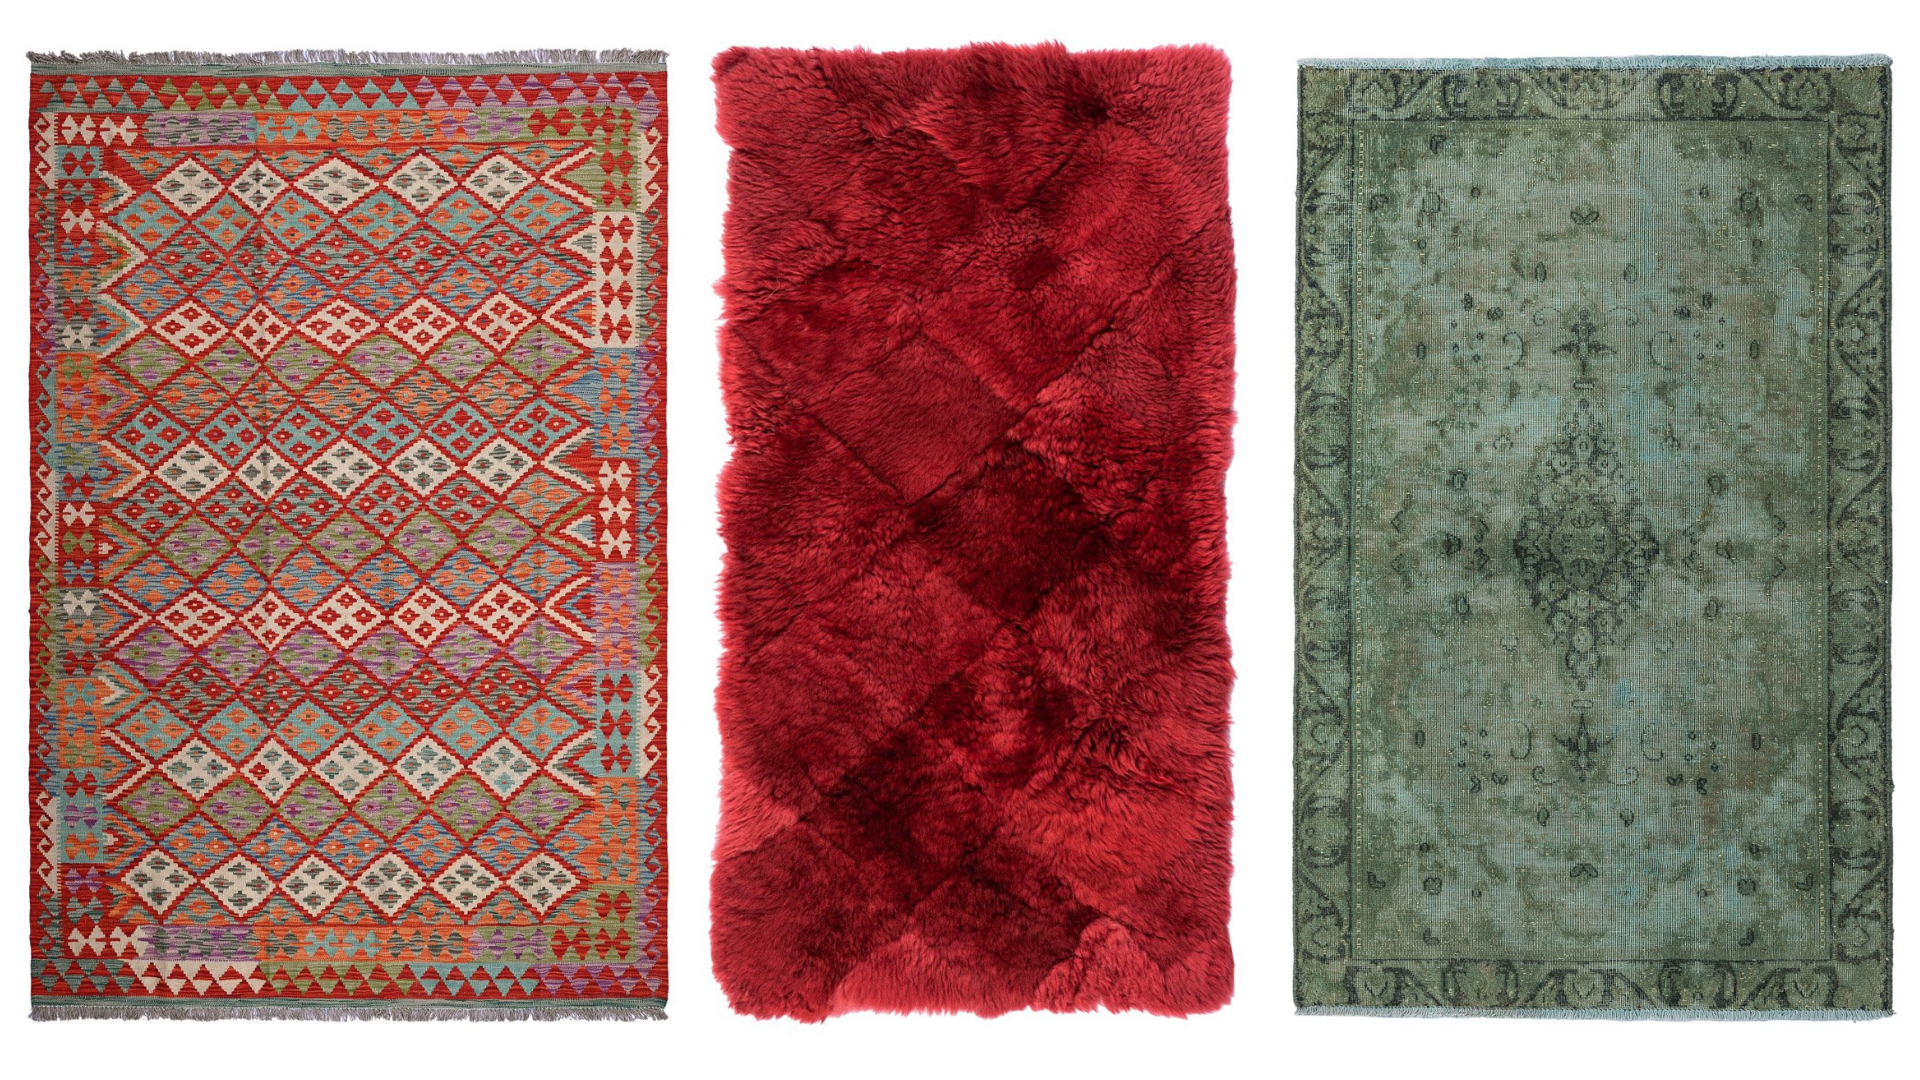 persian rugs, oriental rugs, home decor, home accessories, interior design, design ideas, glamping experiences, glamping decor, decor trends, london rug collection